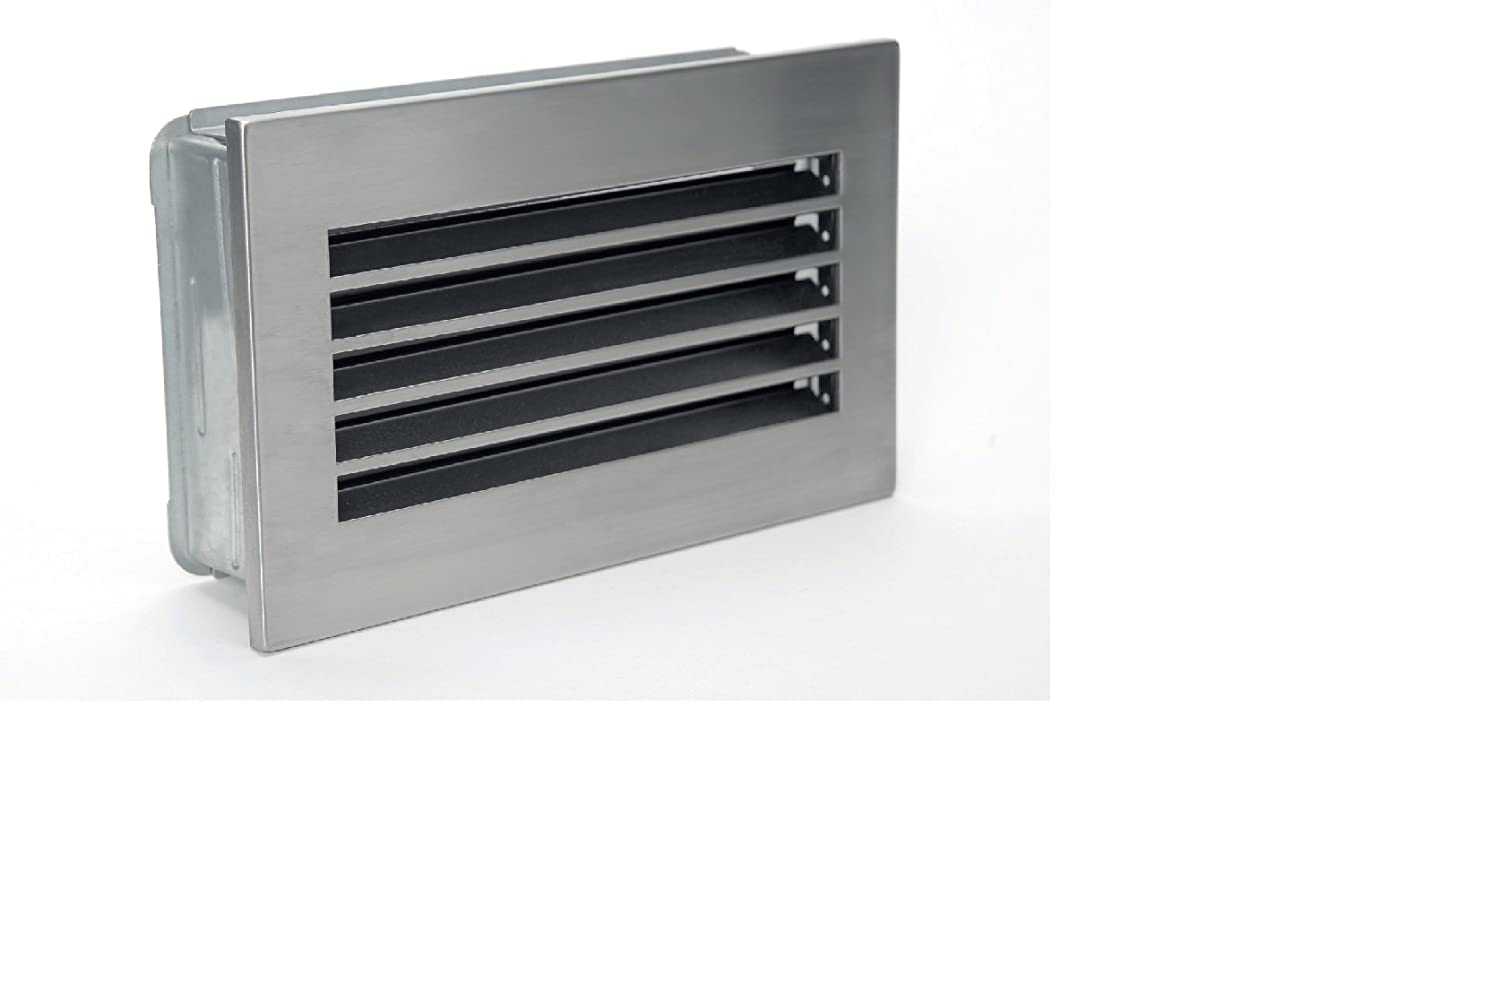 KG3515MESM Cold Air Grille Stainless Steel CB Modern CB-tec